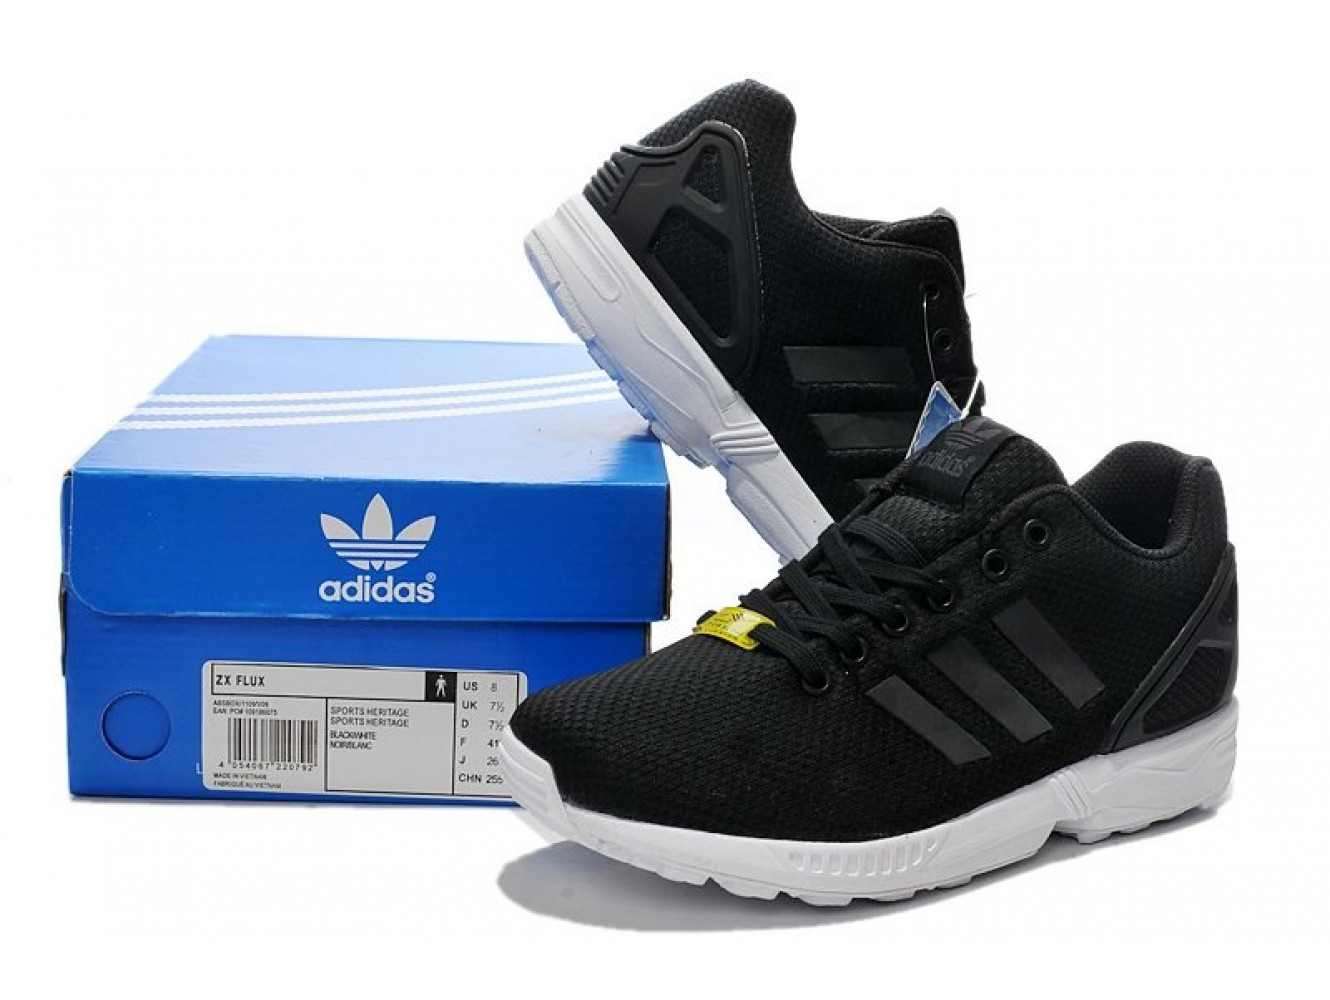 Adidas ZX Flux Base Pack (Black/Running White) (003)